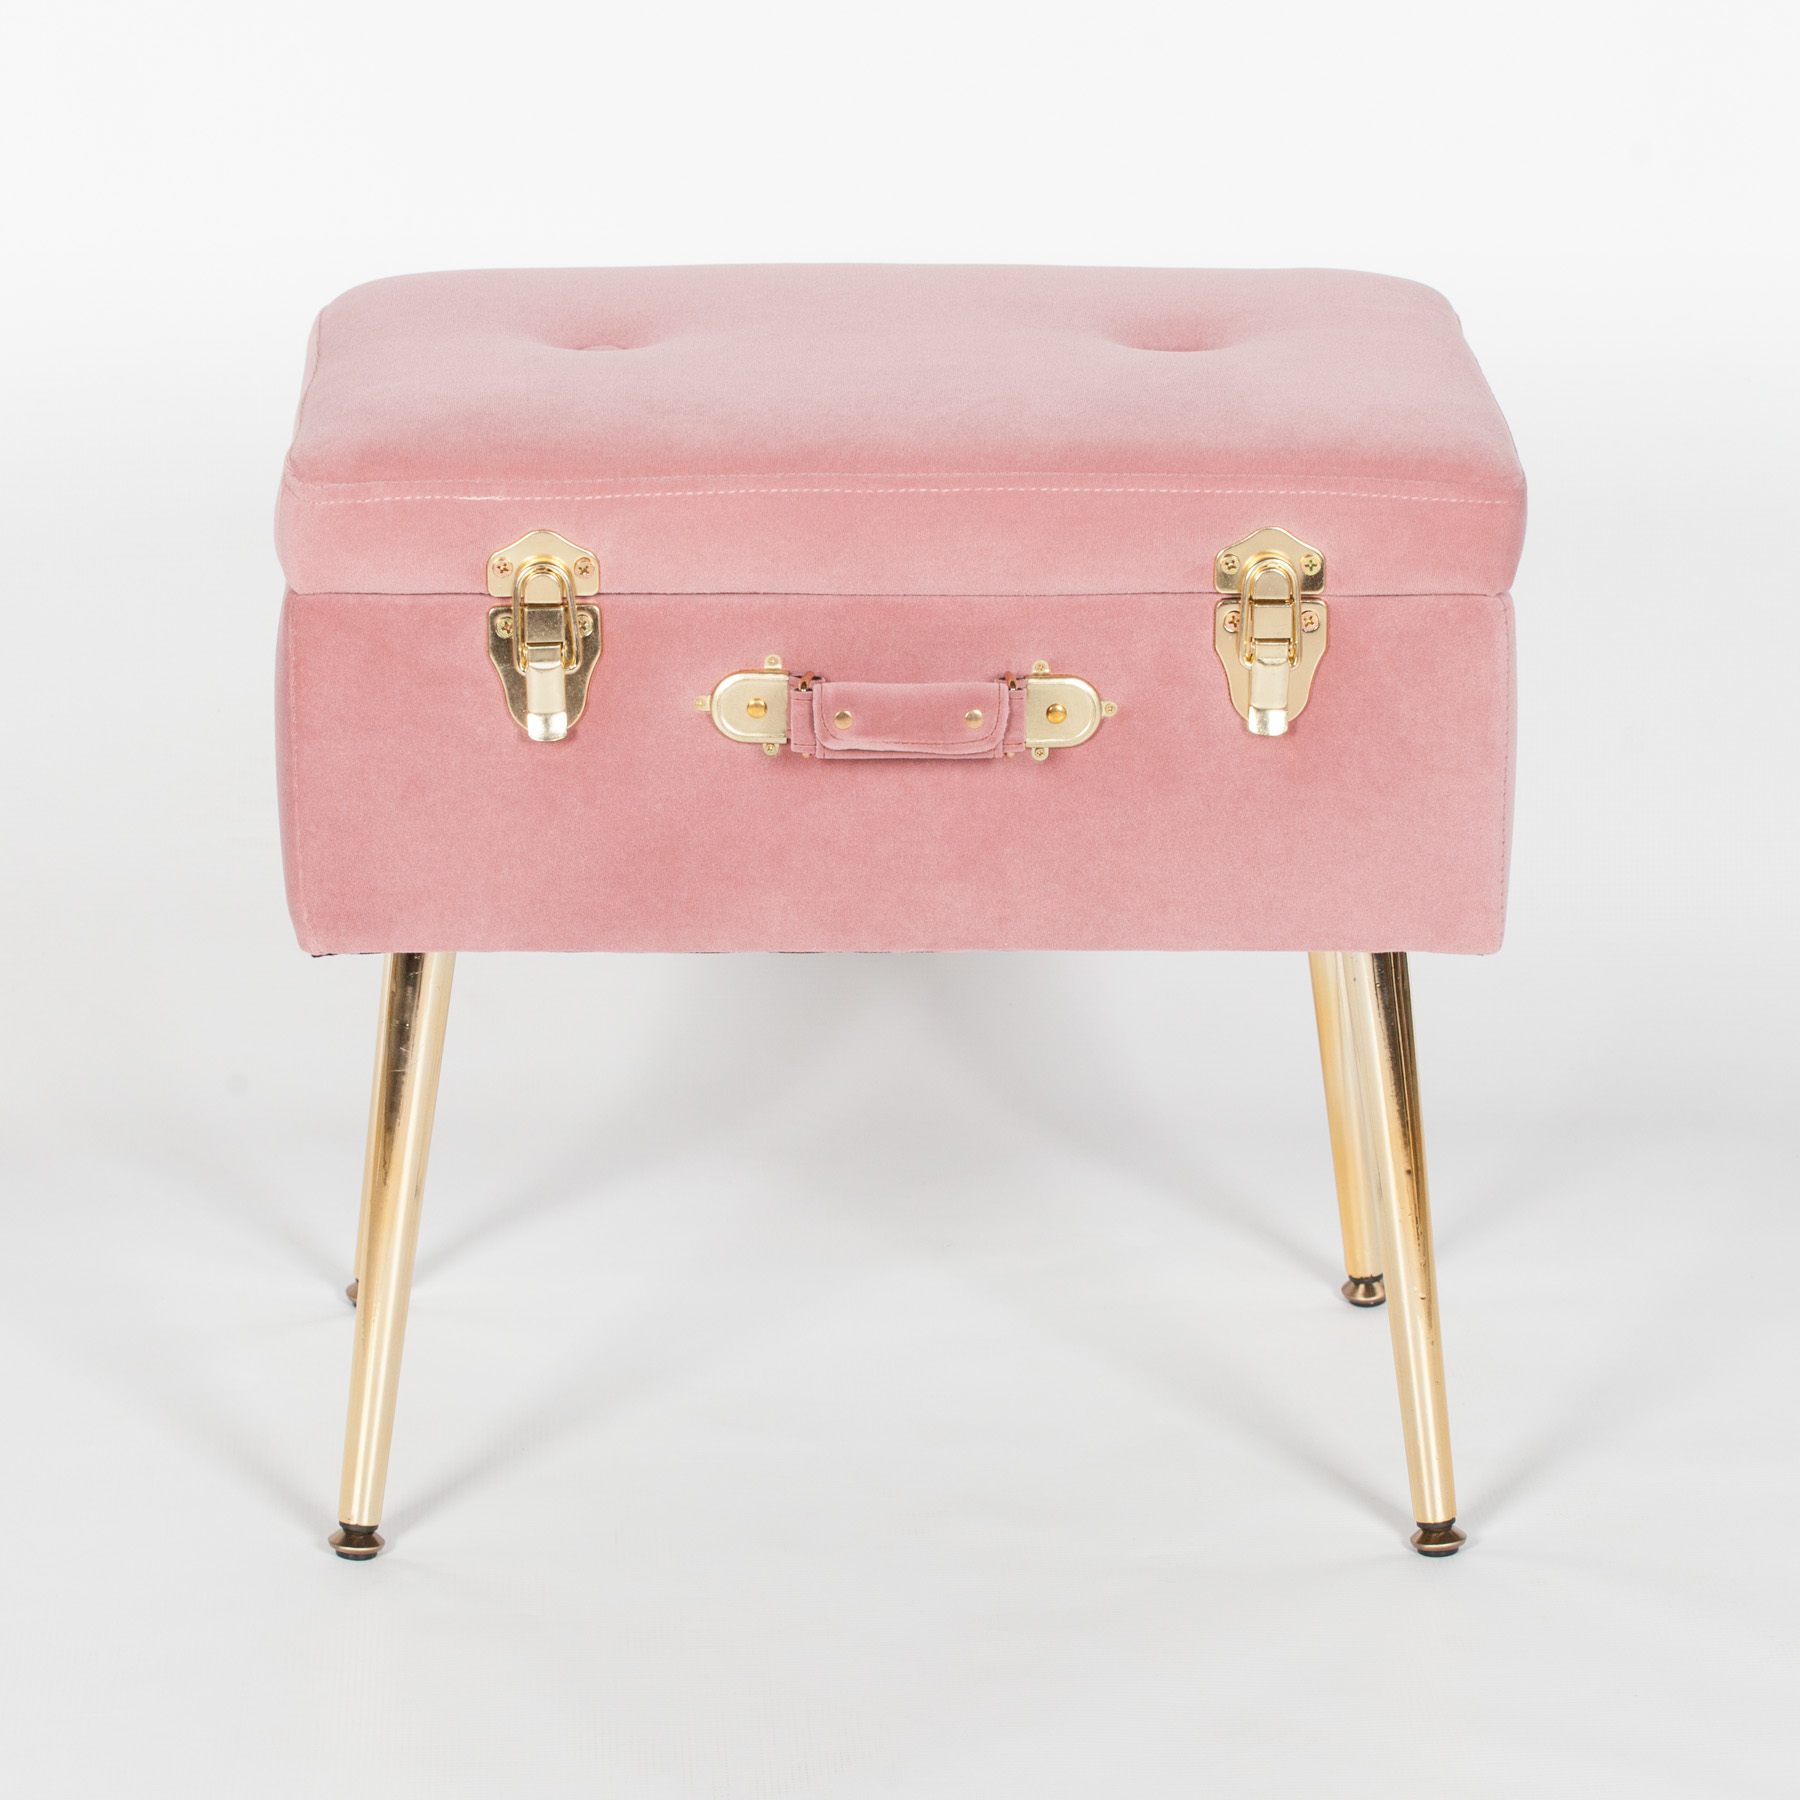 Pink Suitcase Stool With Gold Legs Maison Reproductions Ltd